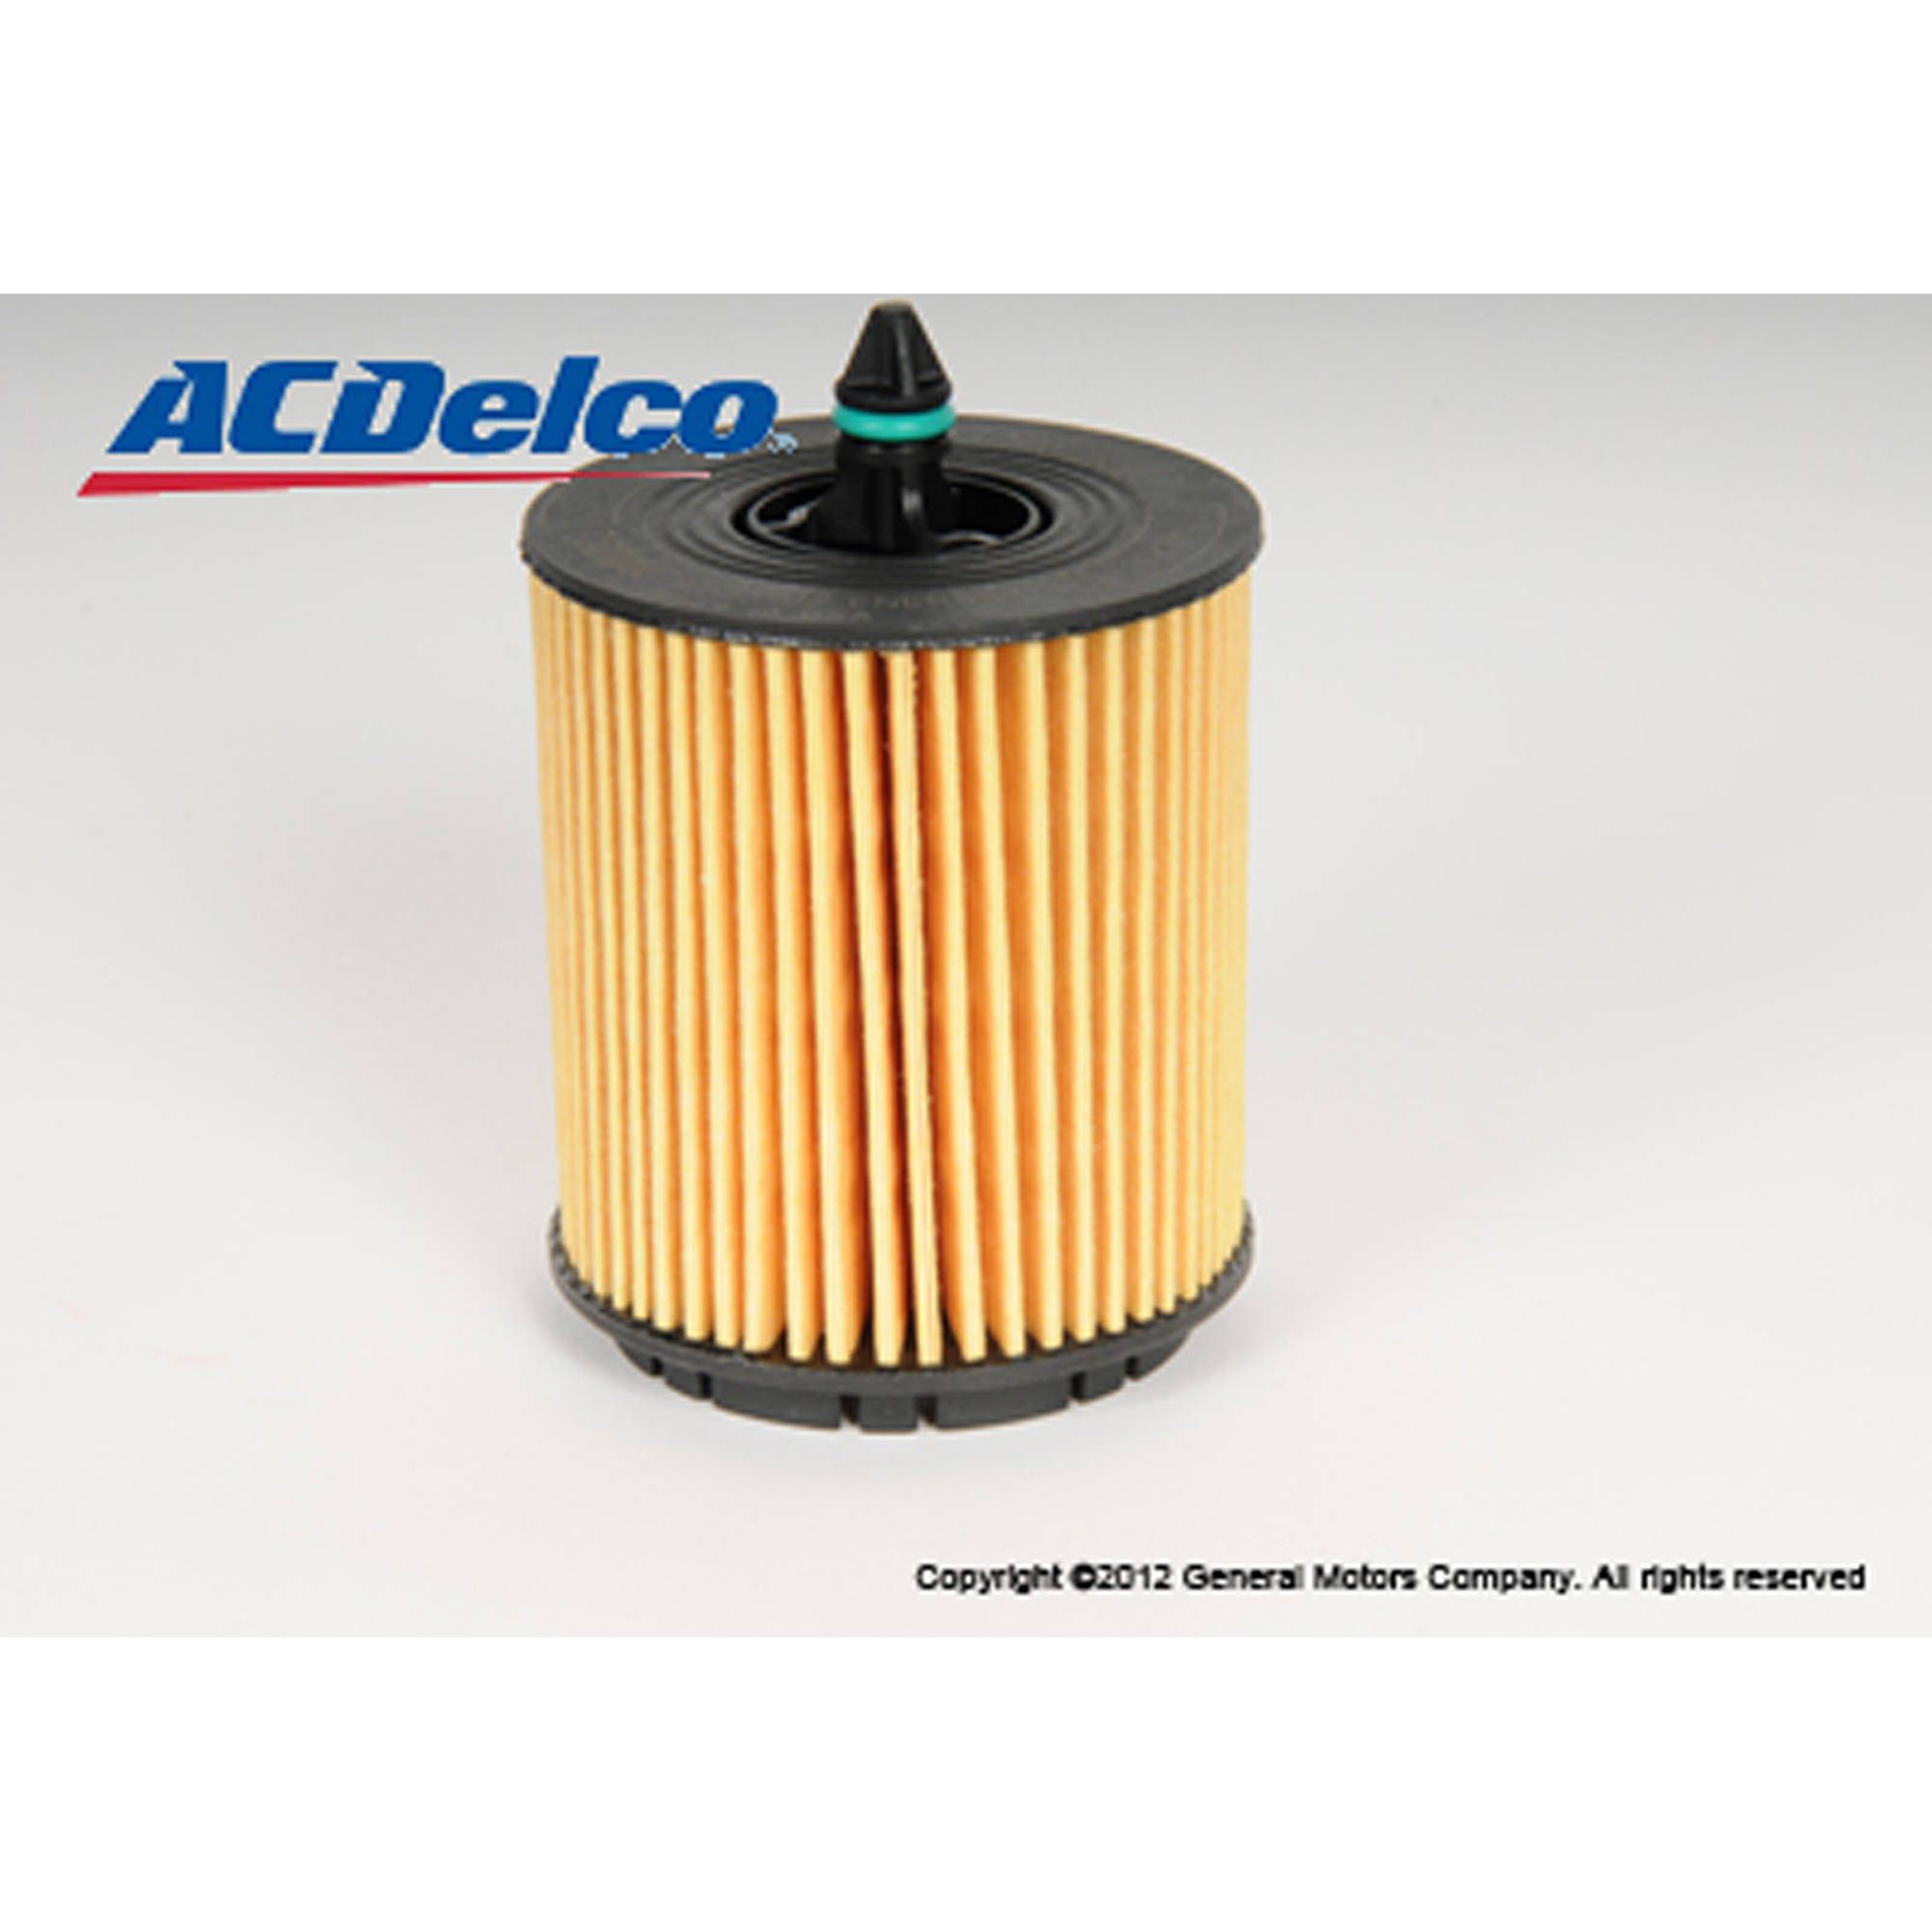 ACDelco PF457G Oil Filter